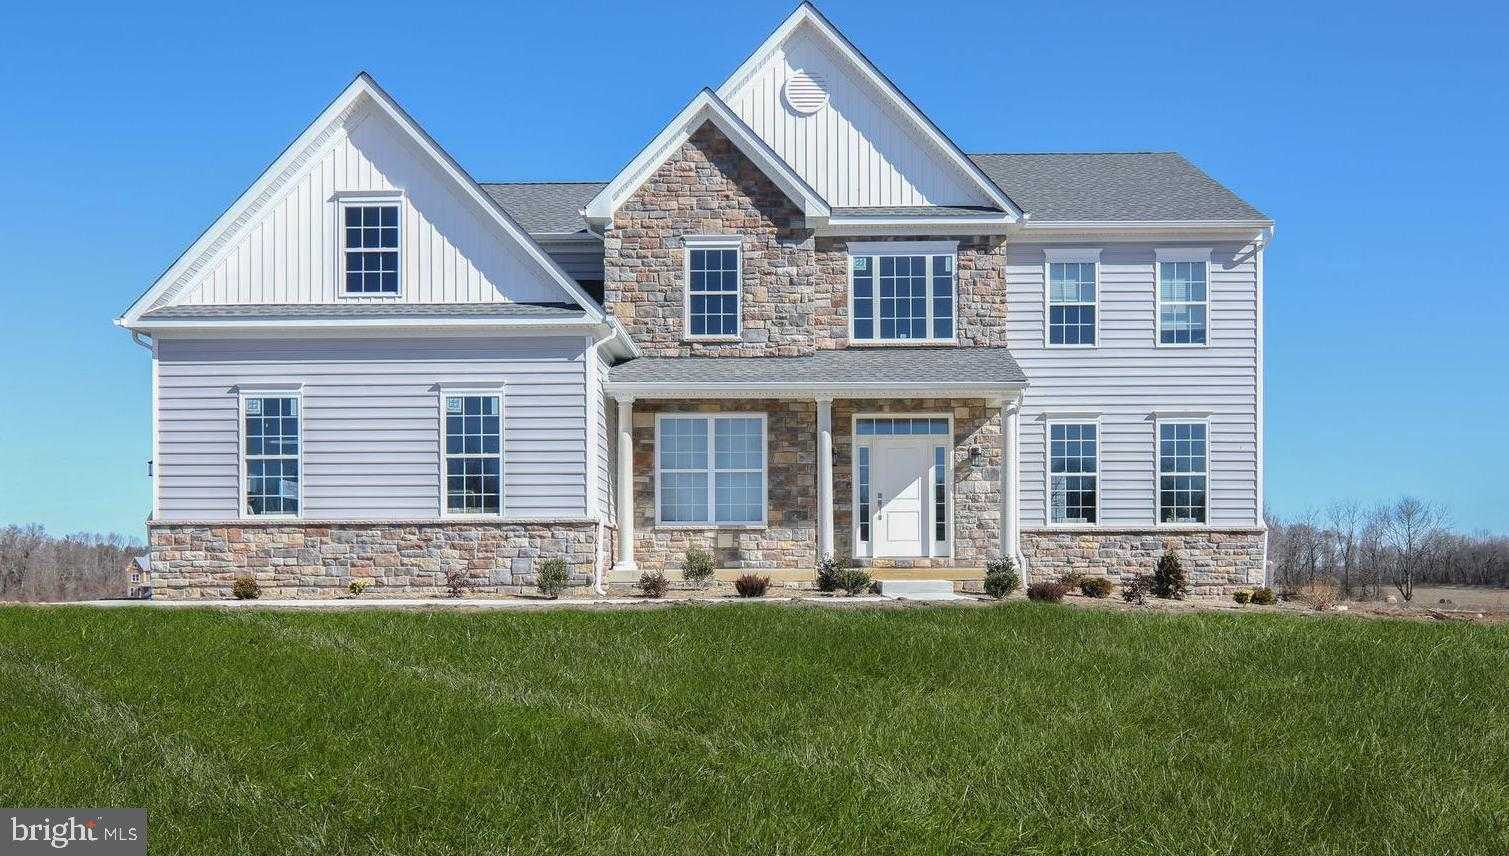 $429,900 - 4Br/3Ba -  for Sale in None Available, Pedricktown